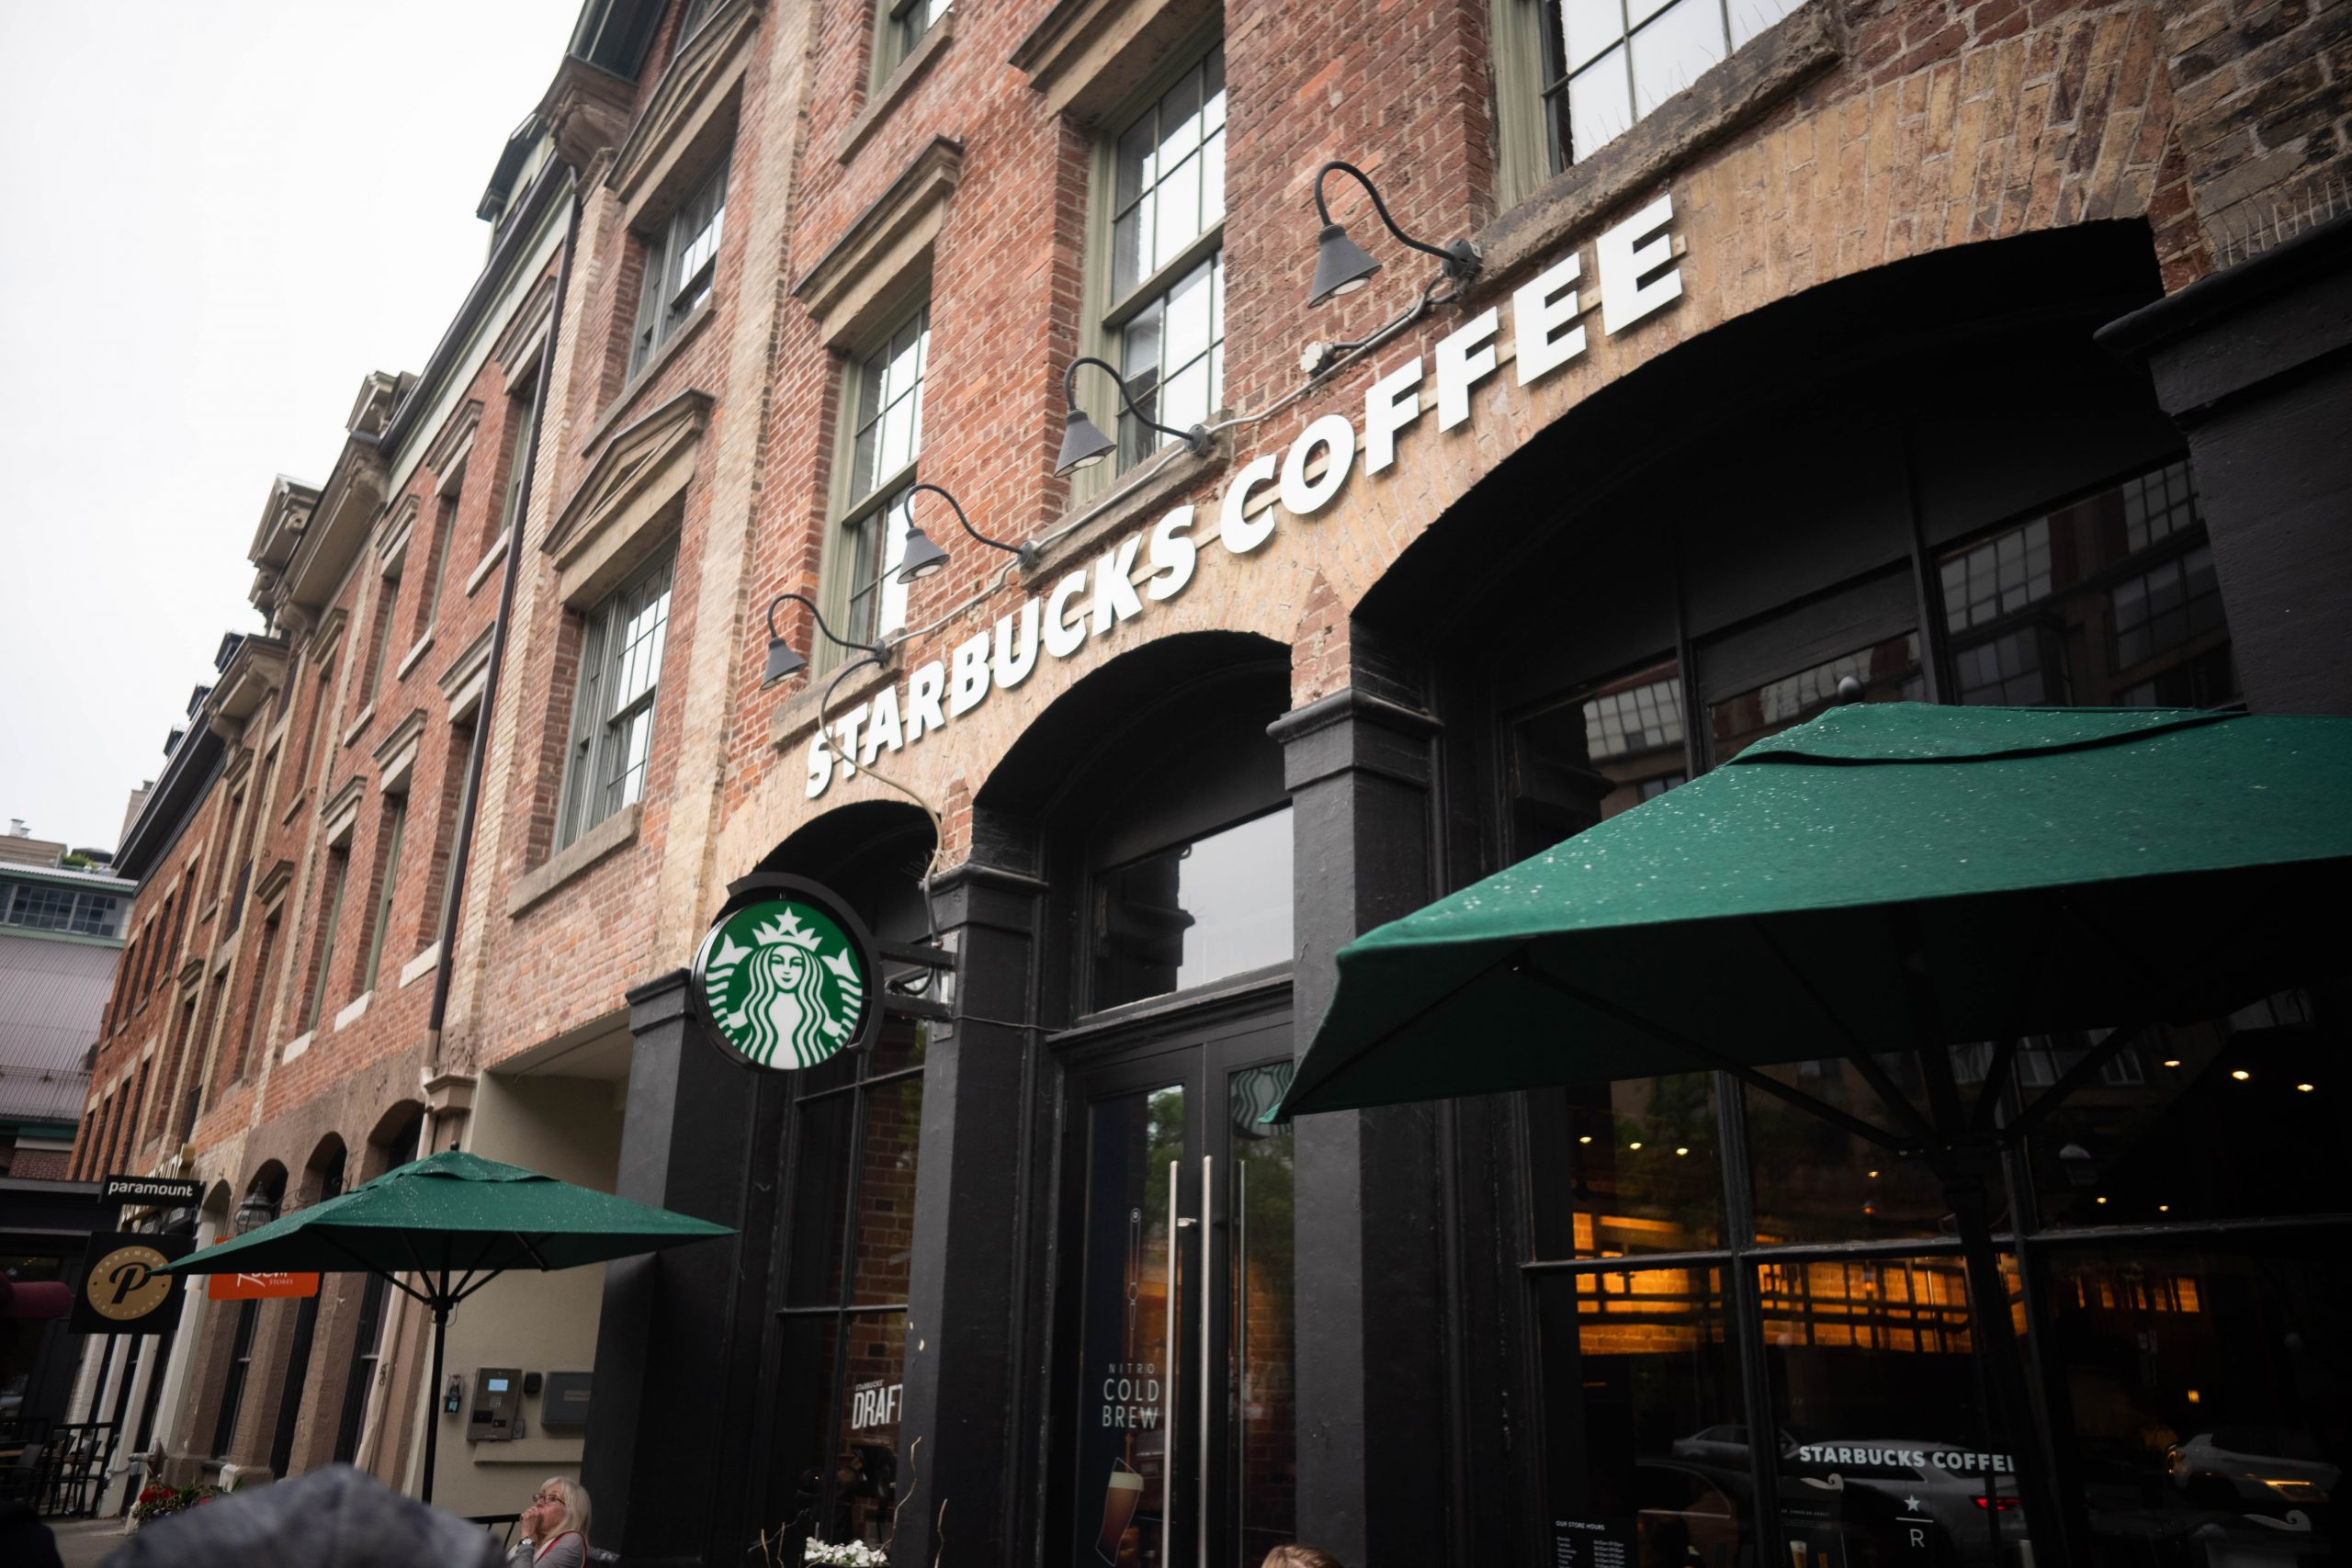 10 Ways to Get Free Starbucks (Get Free Coffee Without Lifting a Finger!)